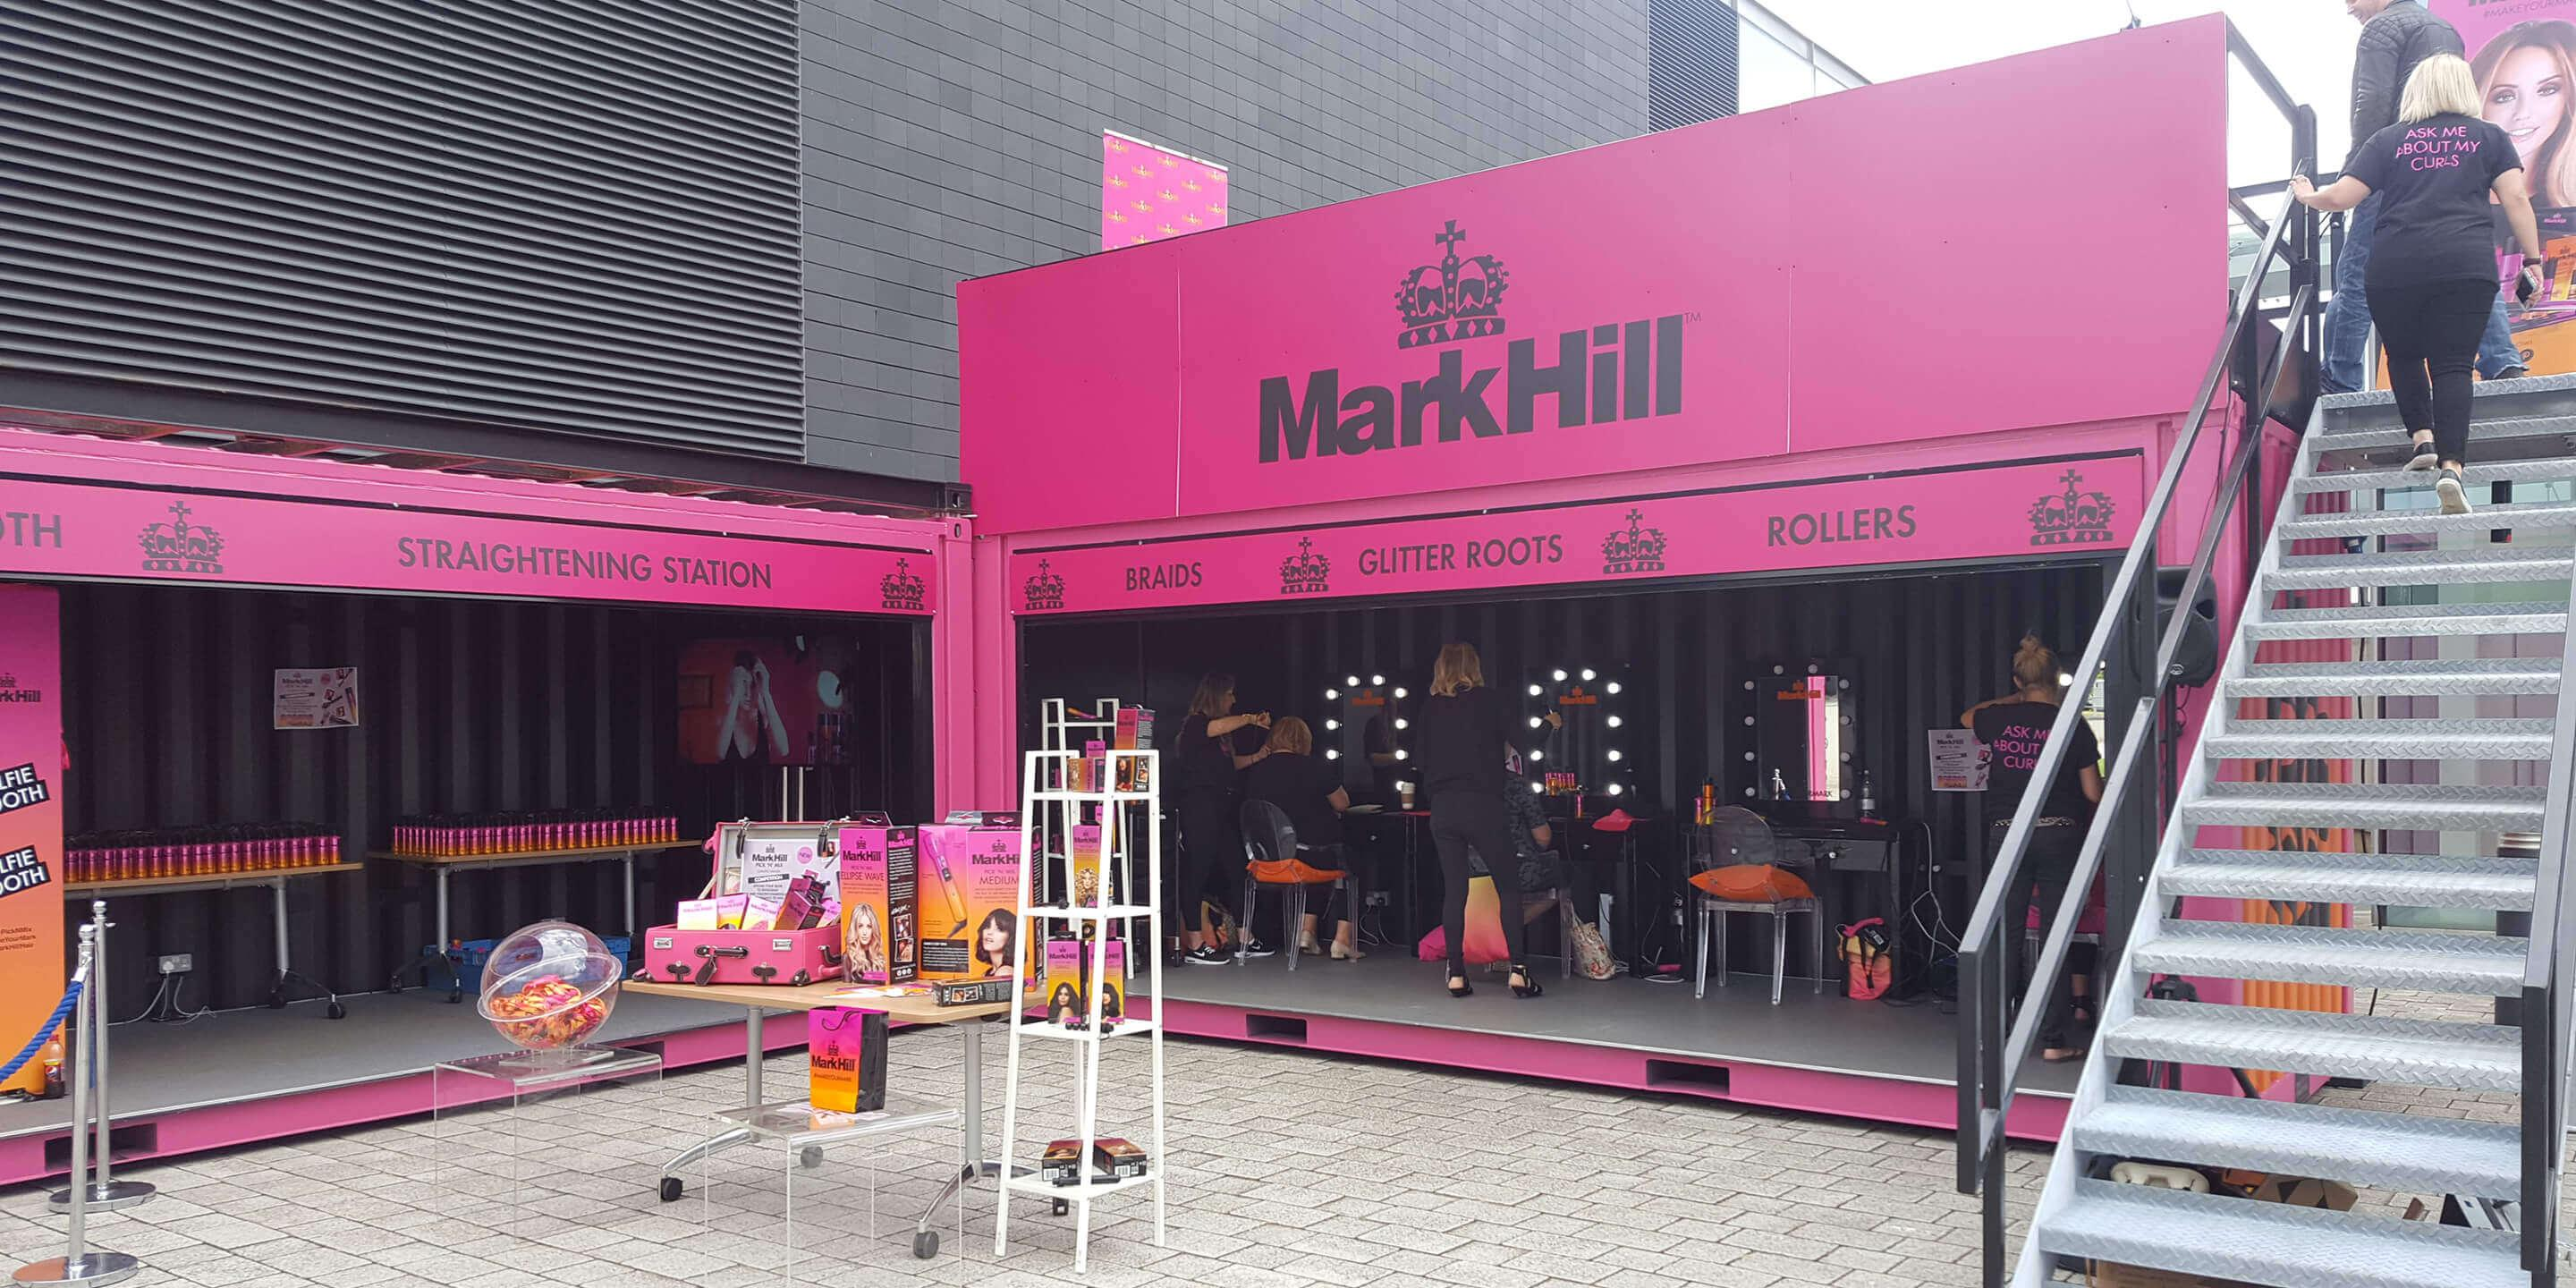 Event Shipping Containers: Statement for Mark Hill Activation